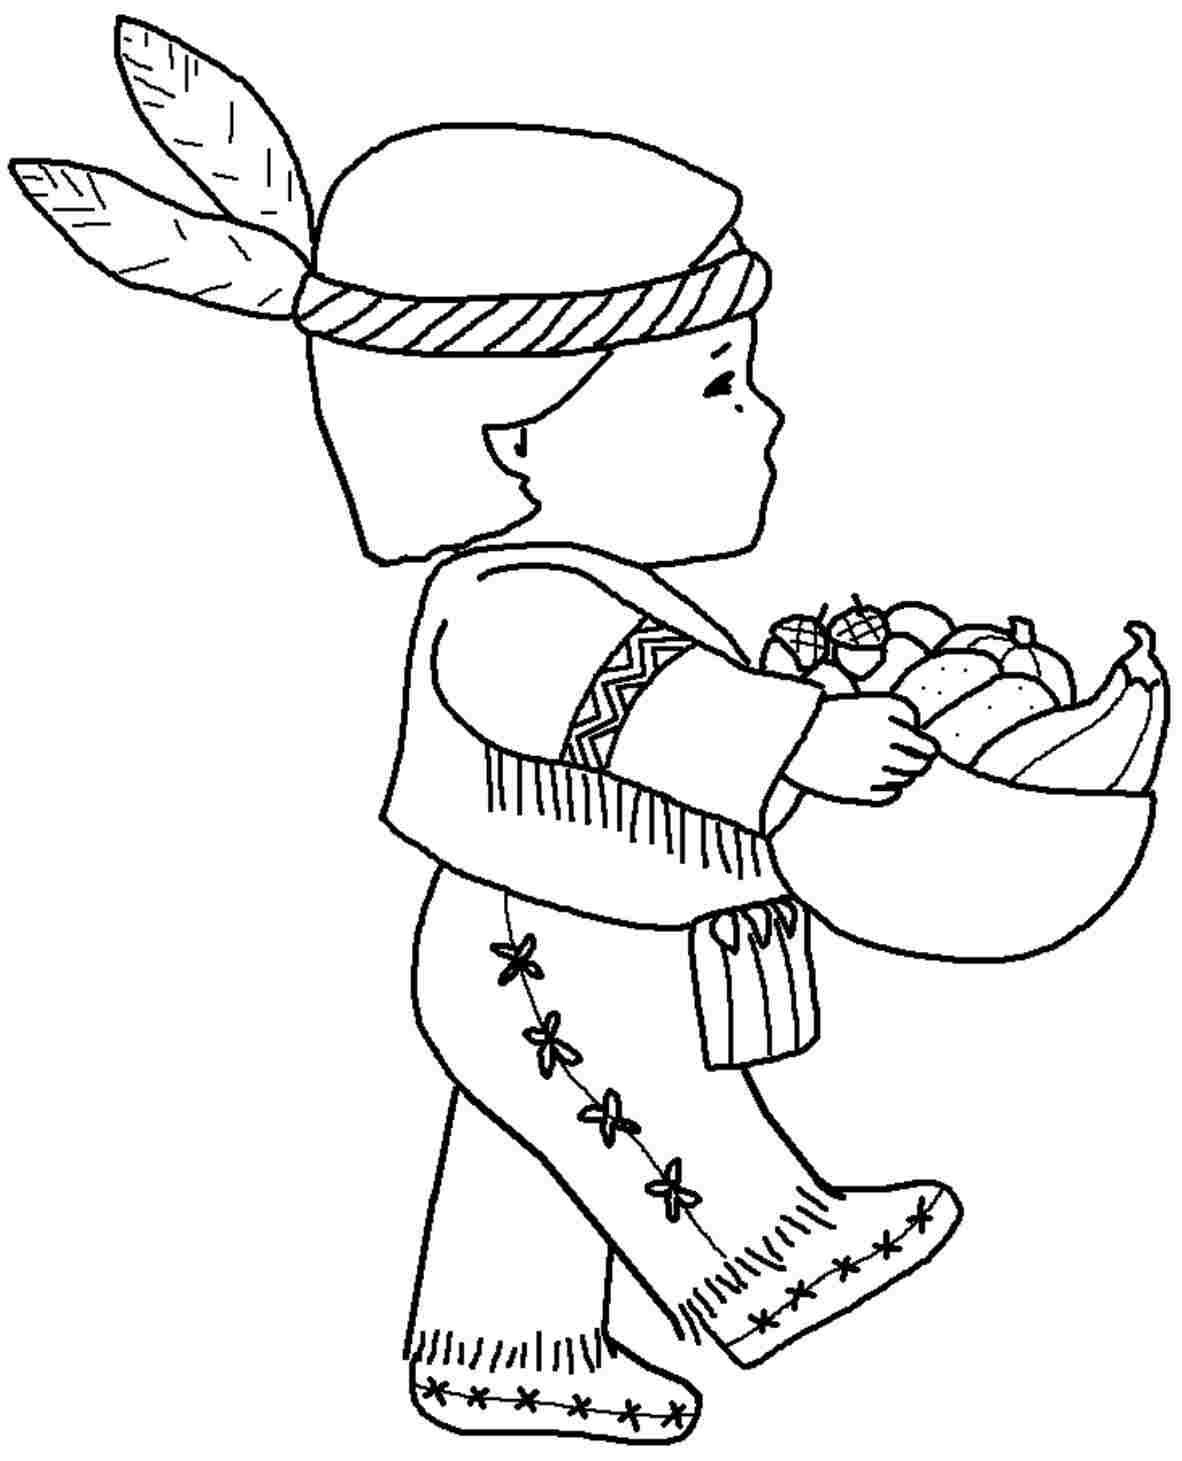 If You Desire To Get The Printable Thanksgiving Indian Coloring Sheets